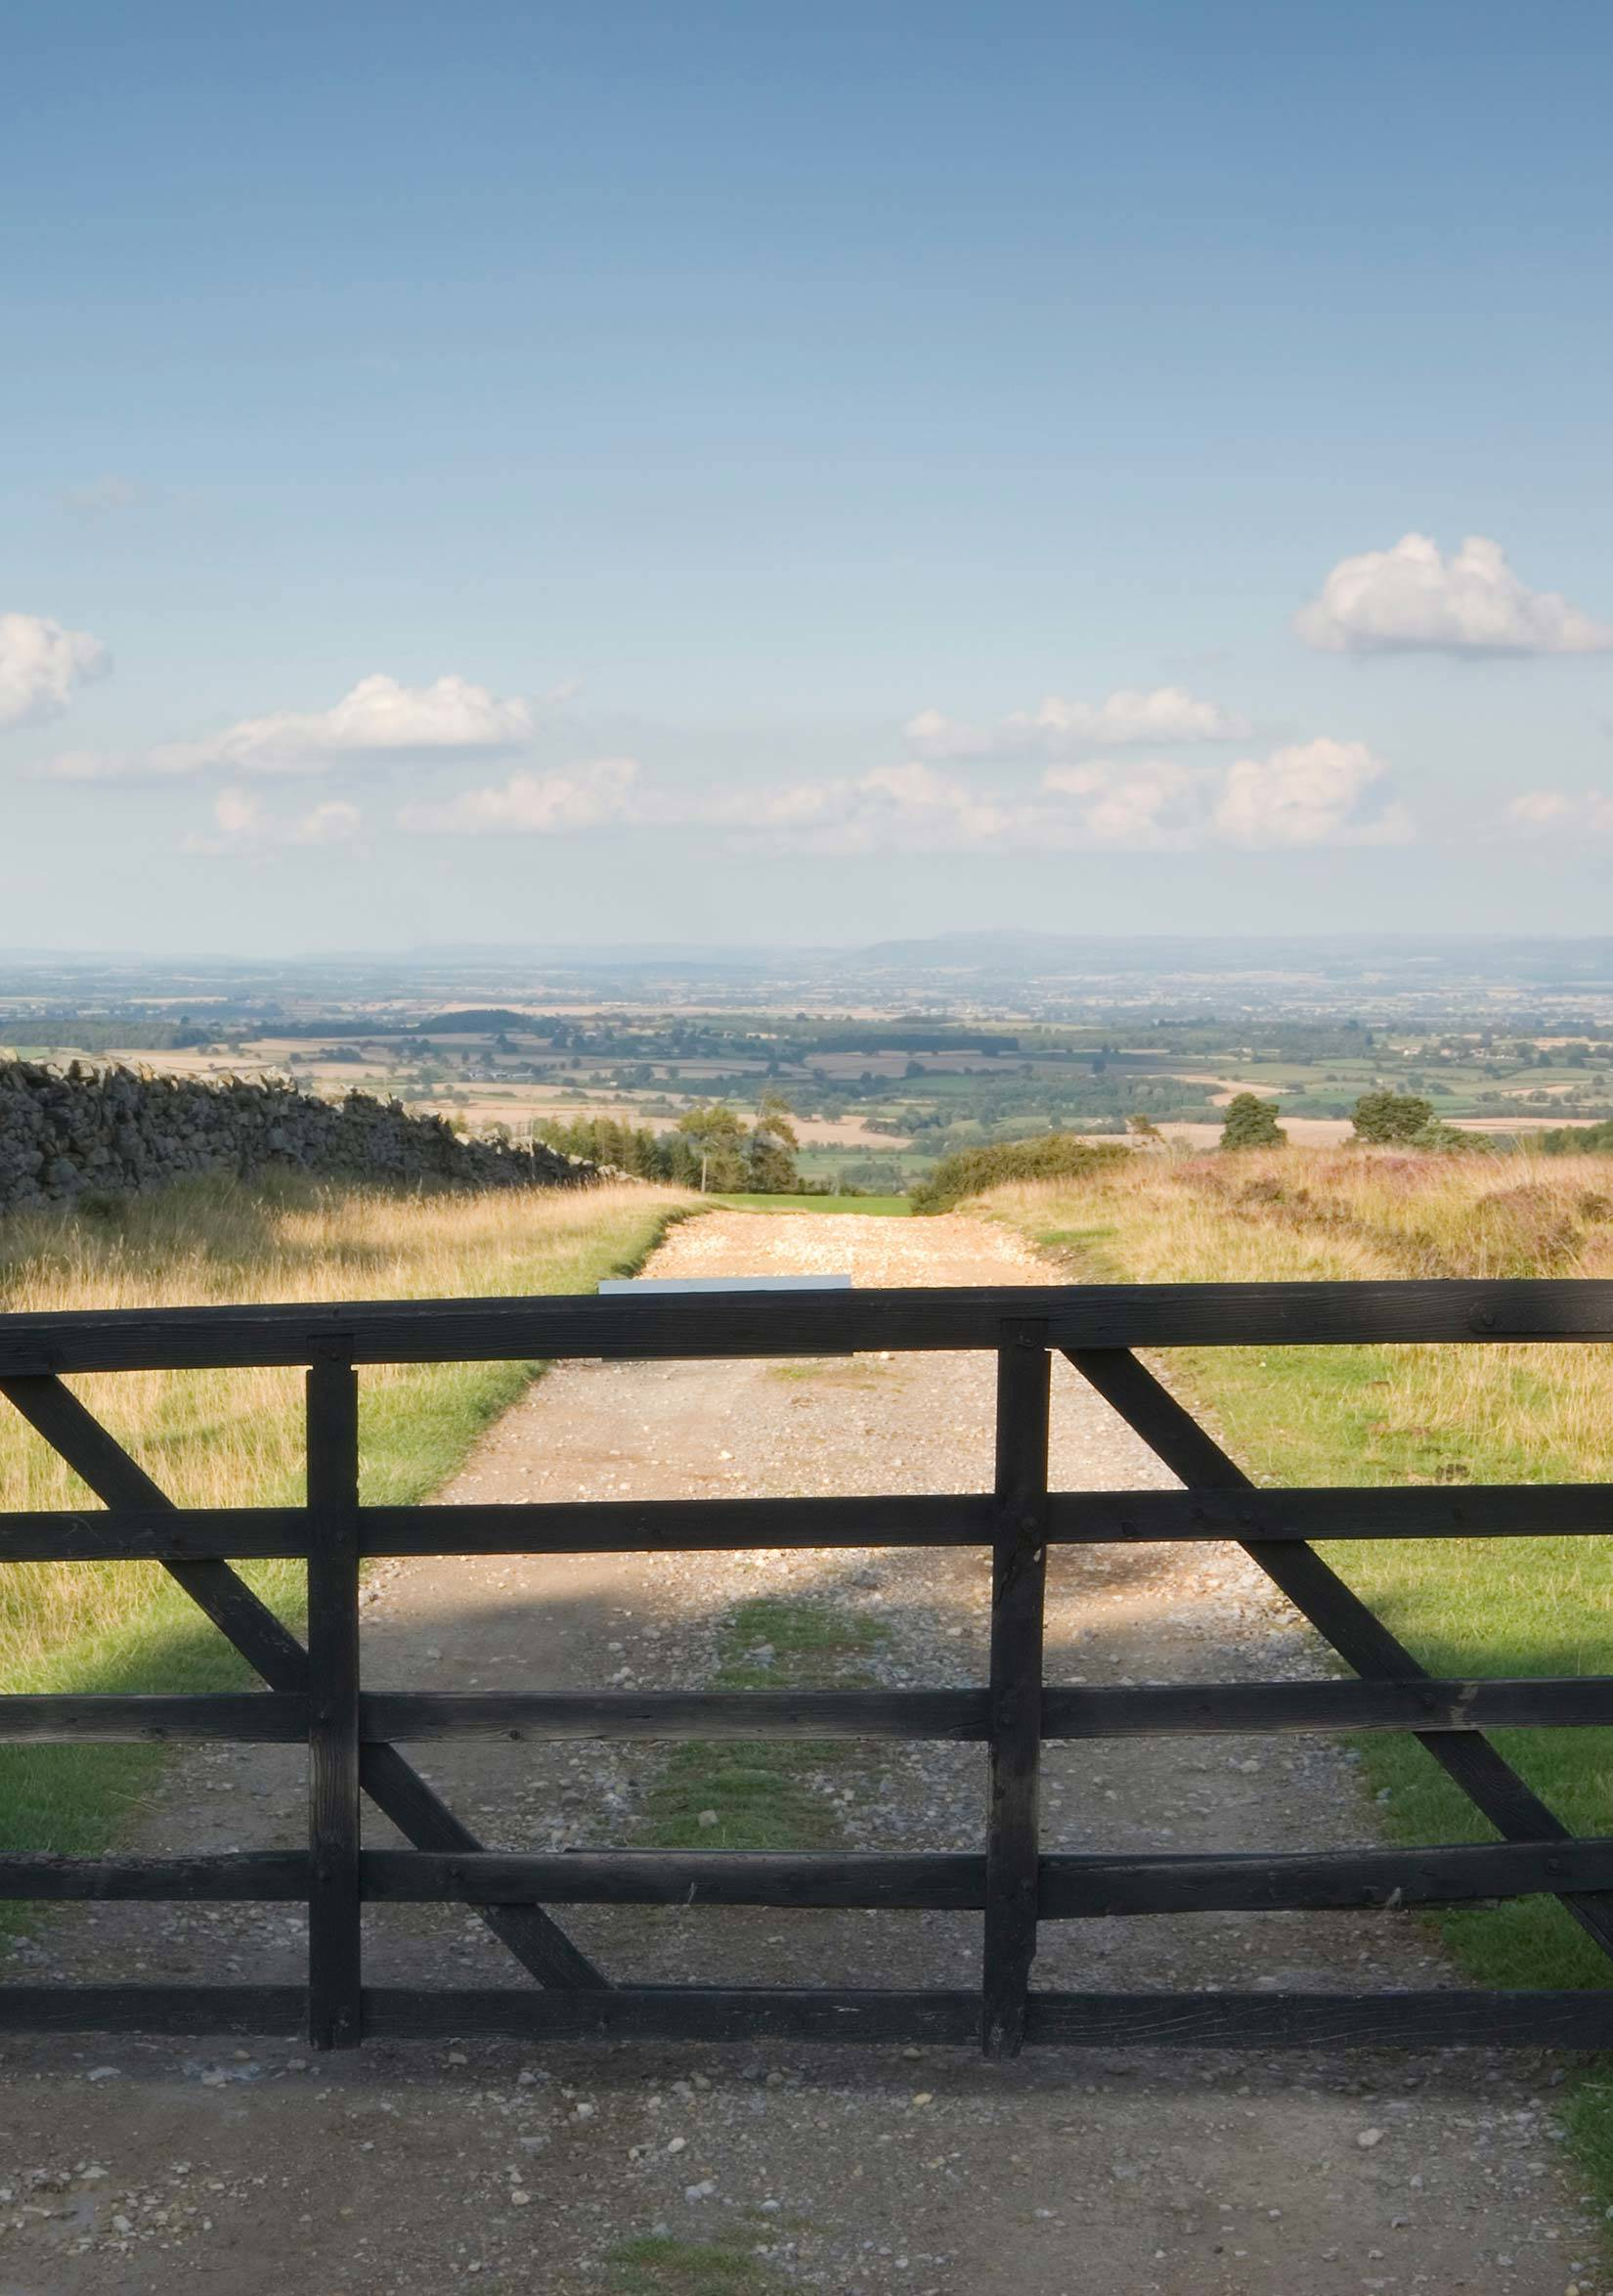 Gate across an open track leading to wide view of the Yorkshire Dales